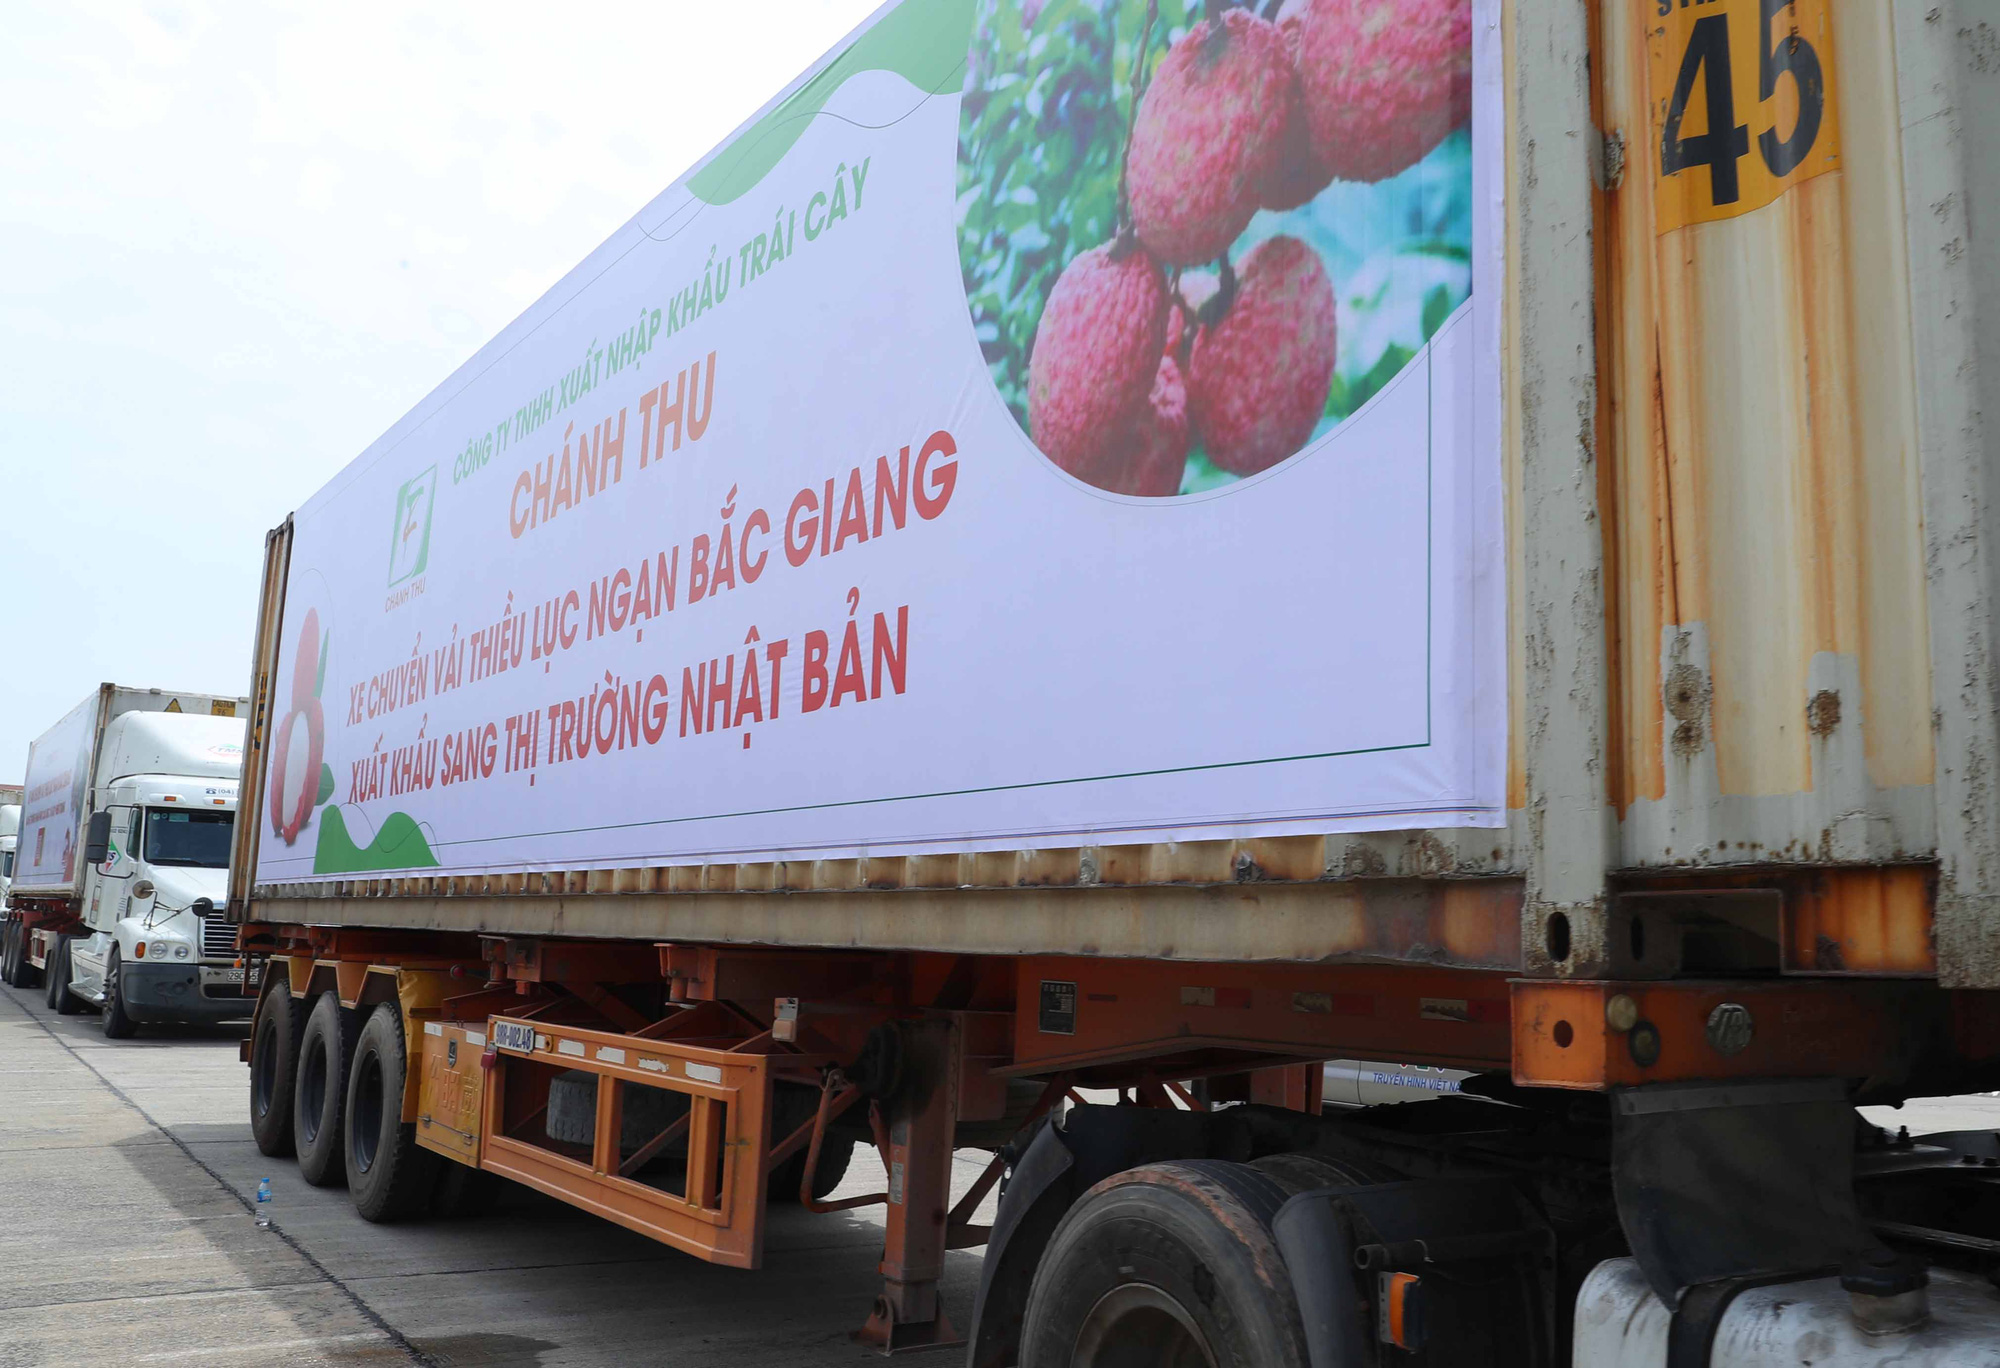 The trucks carrying lychee to harvested lychee for consumption in both domestic and foreign markets.